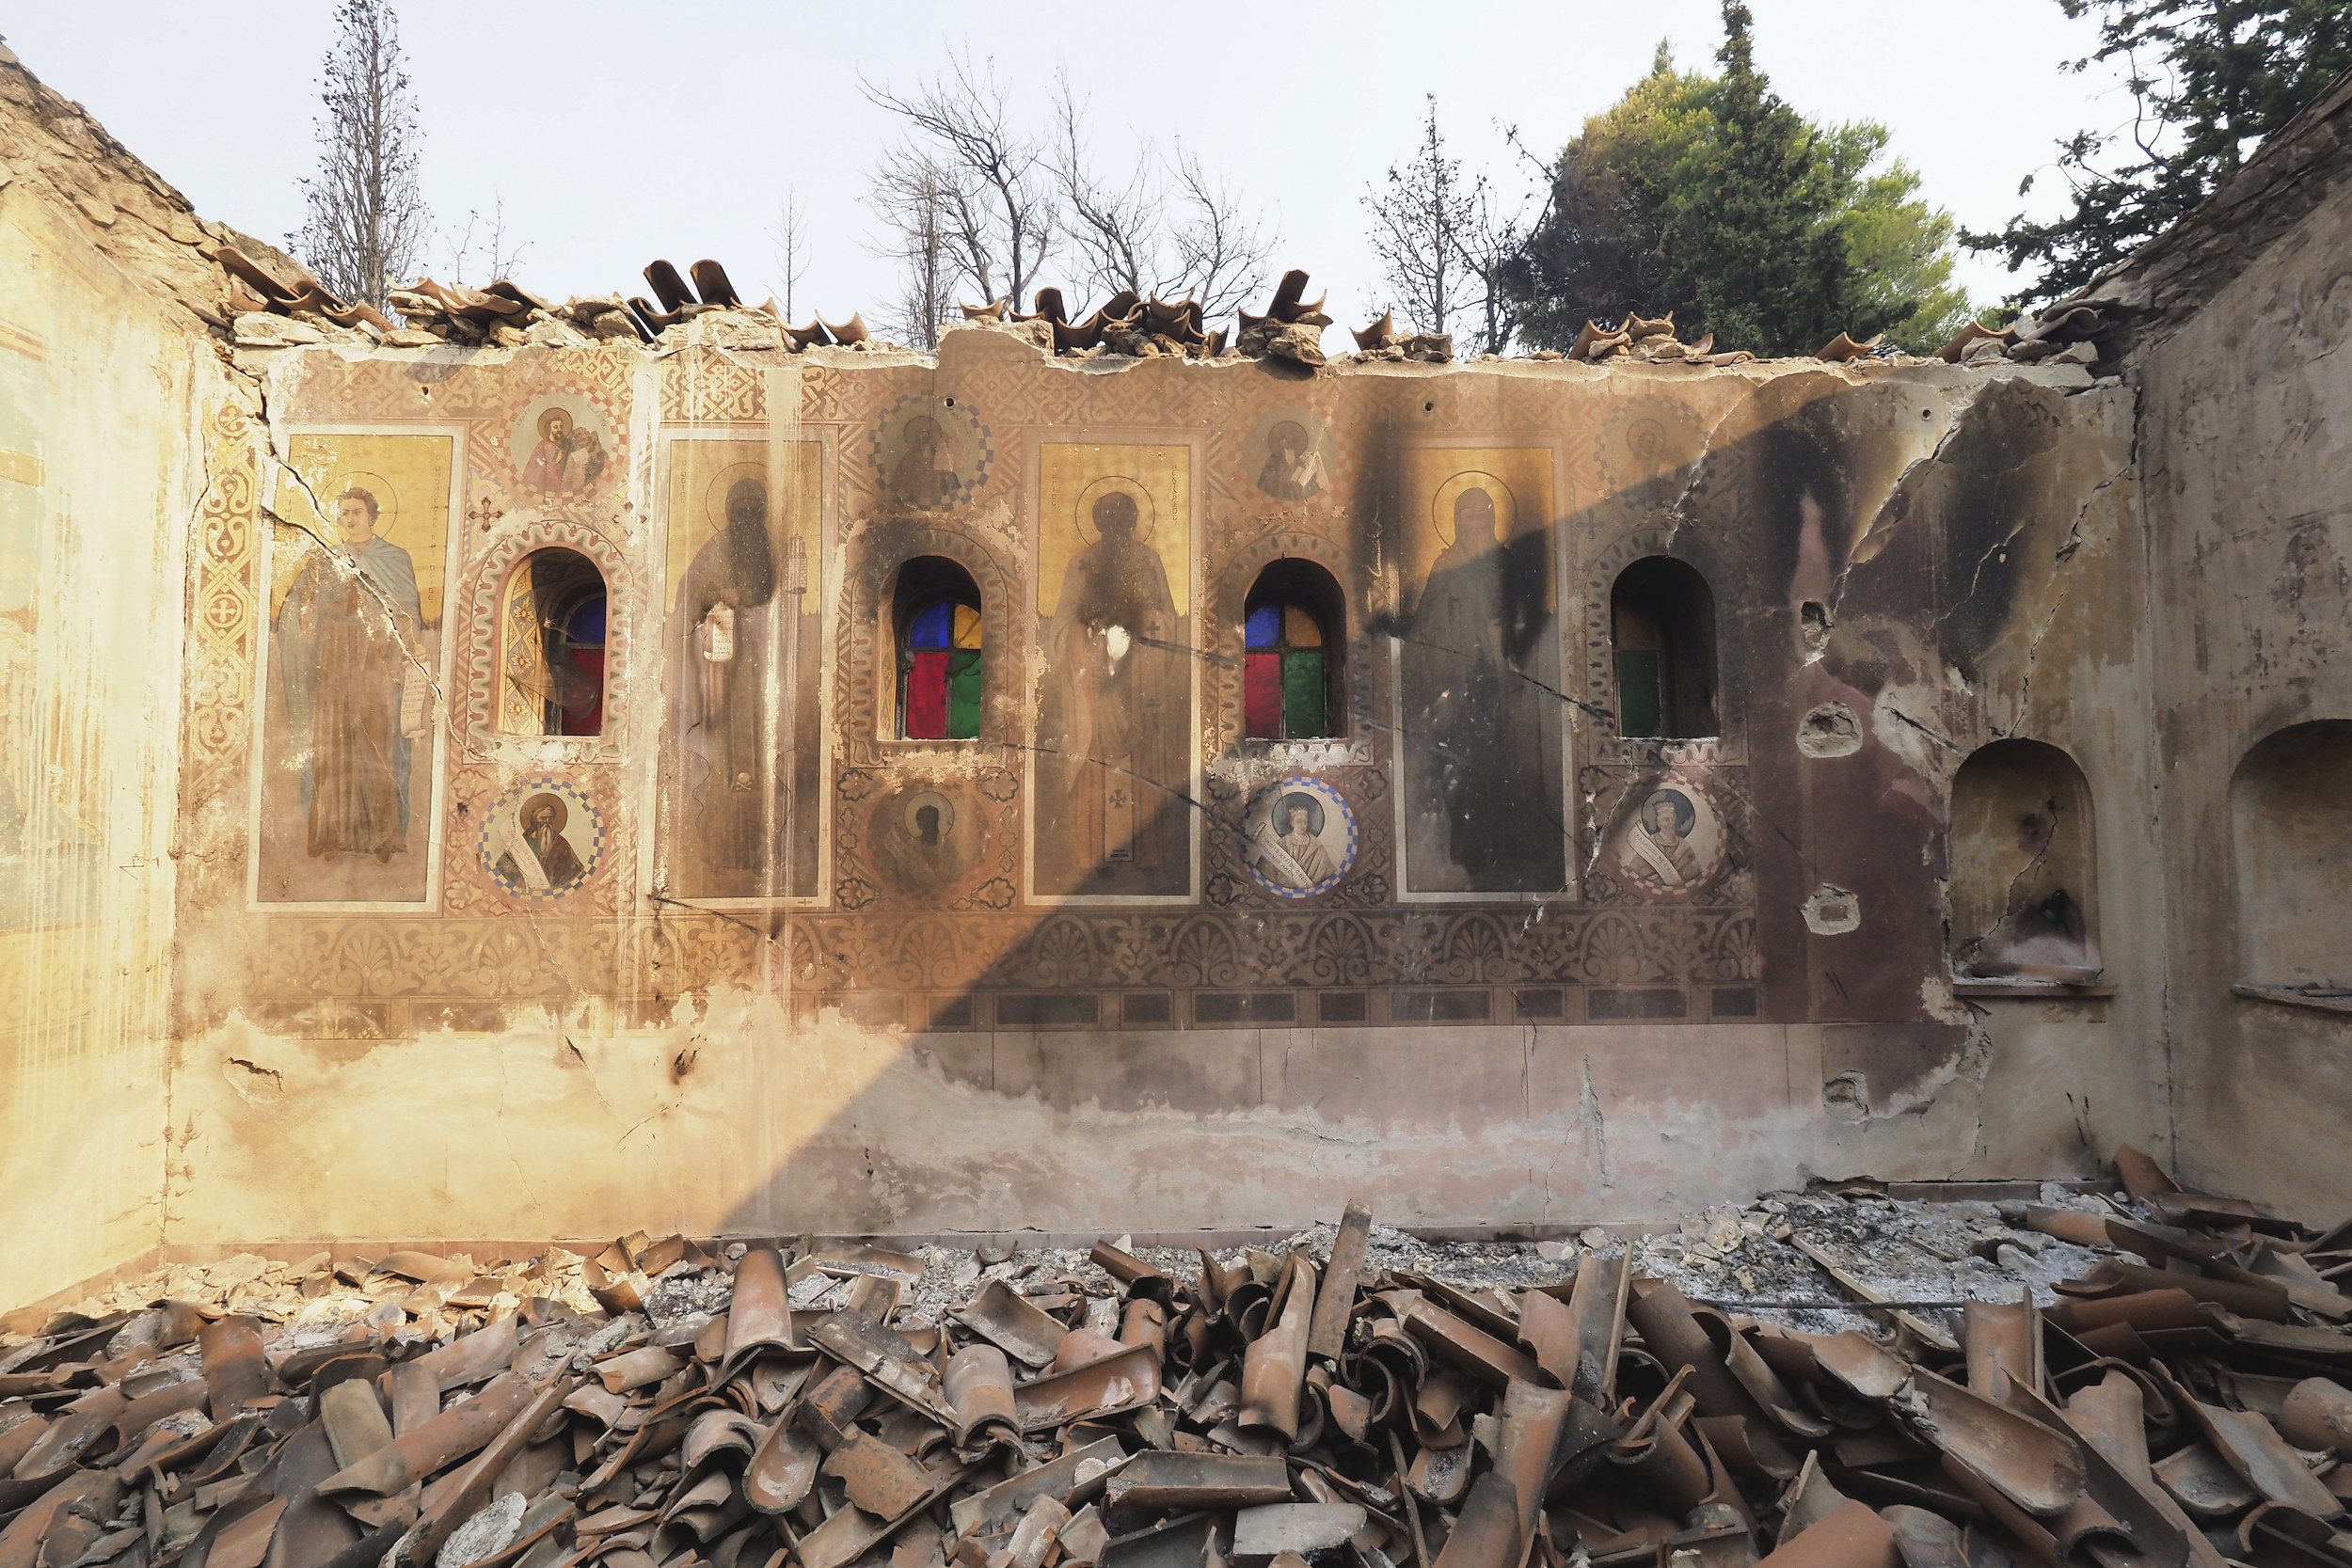 A church's wall, decorated with images of saints, is cracked and charred, surrounded by debris, after a wildfire